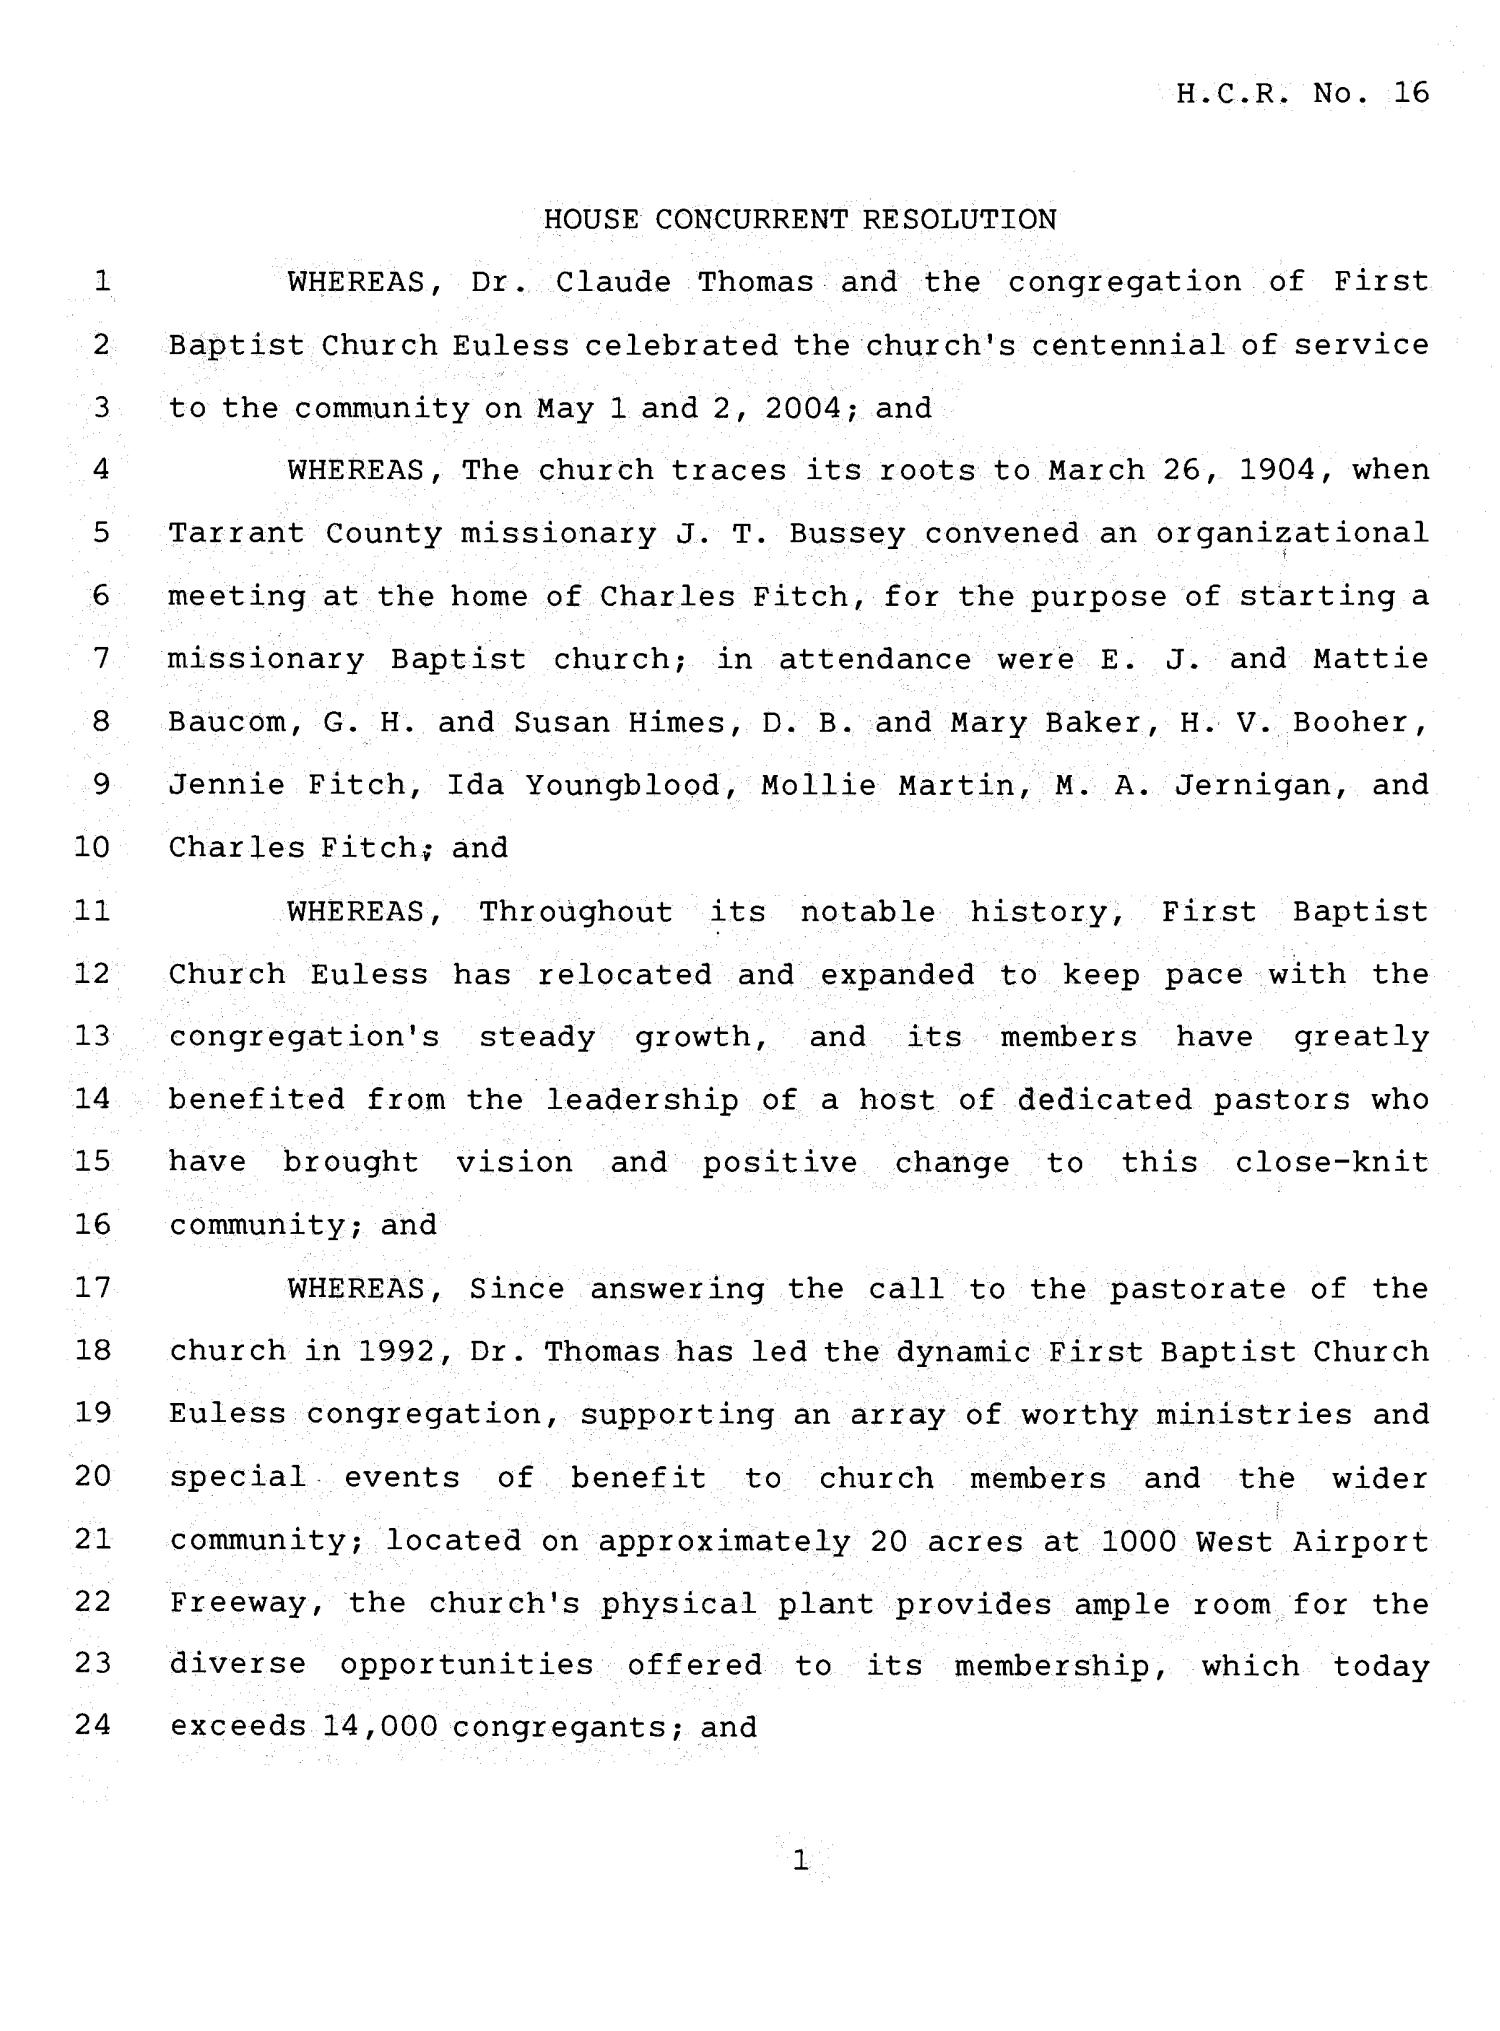 78th Texas Legislature, Fourth Called Session, House Concurrent Resolution 16                                                                                                      [Sequence #]: 1 of 3